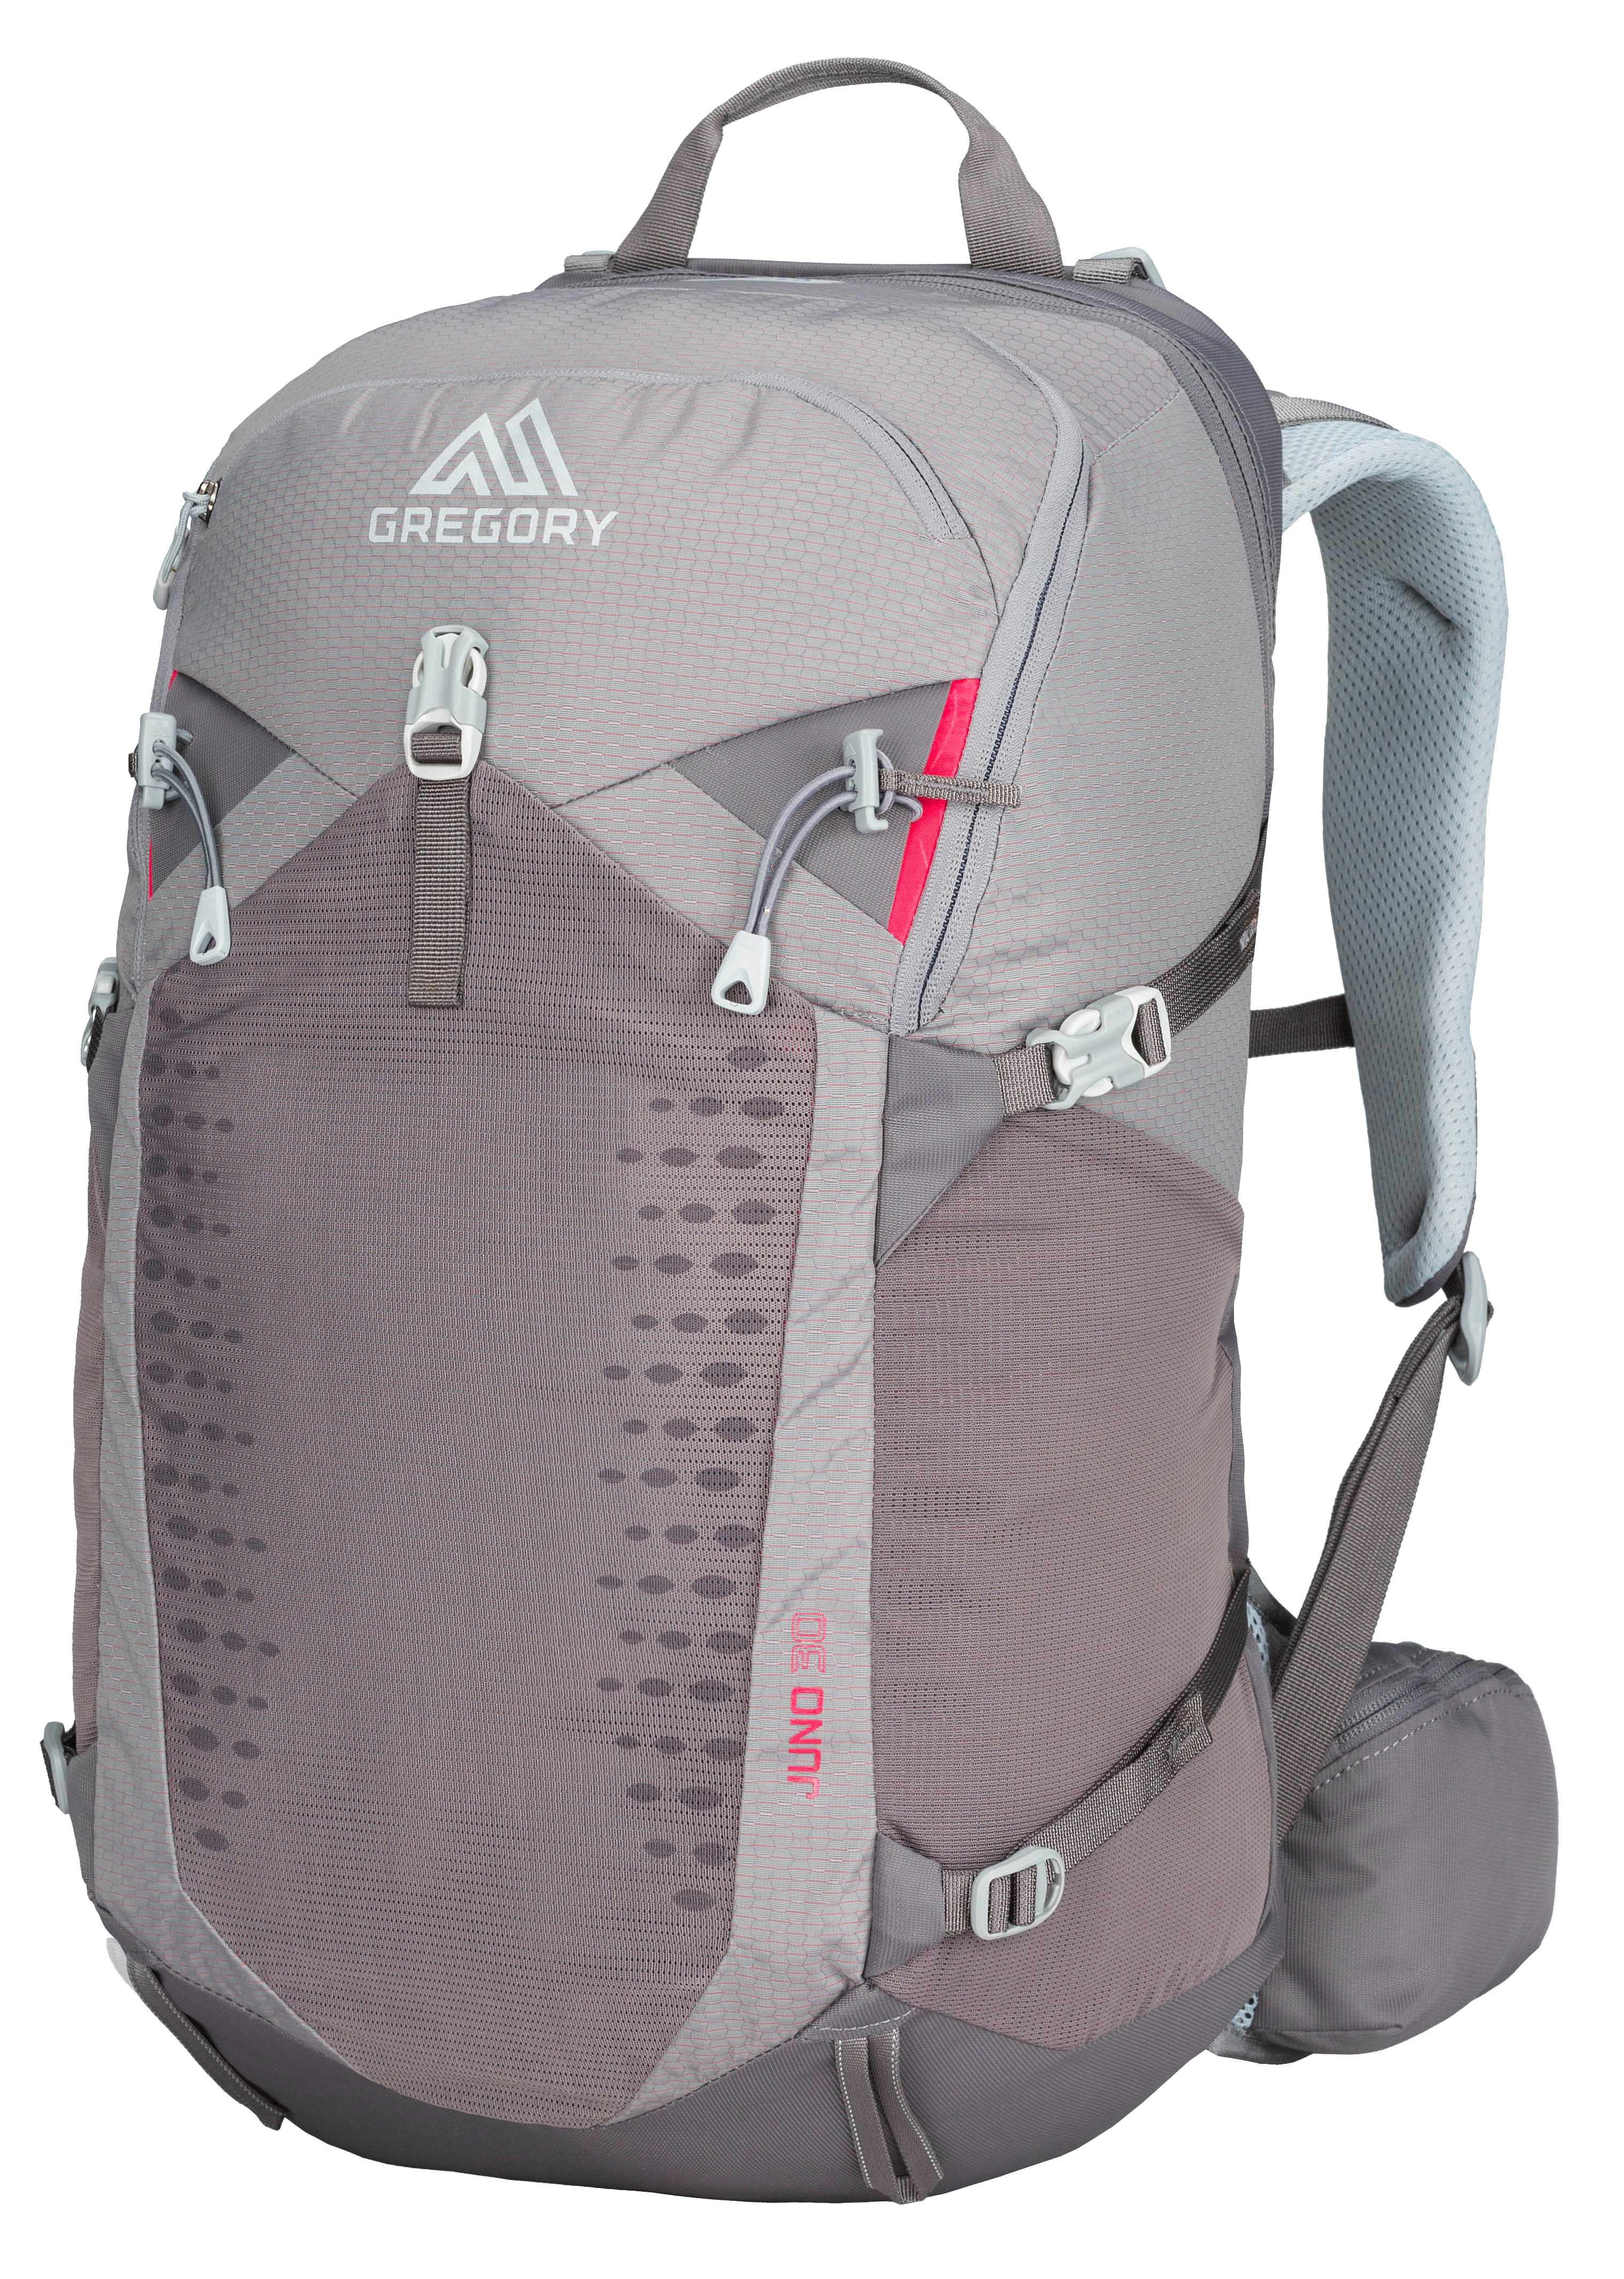 10724a28945b Gregory Juno 30 Daypack - Women s